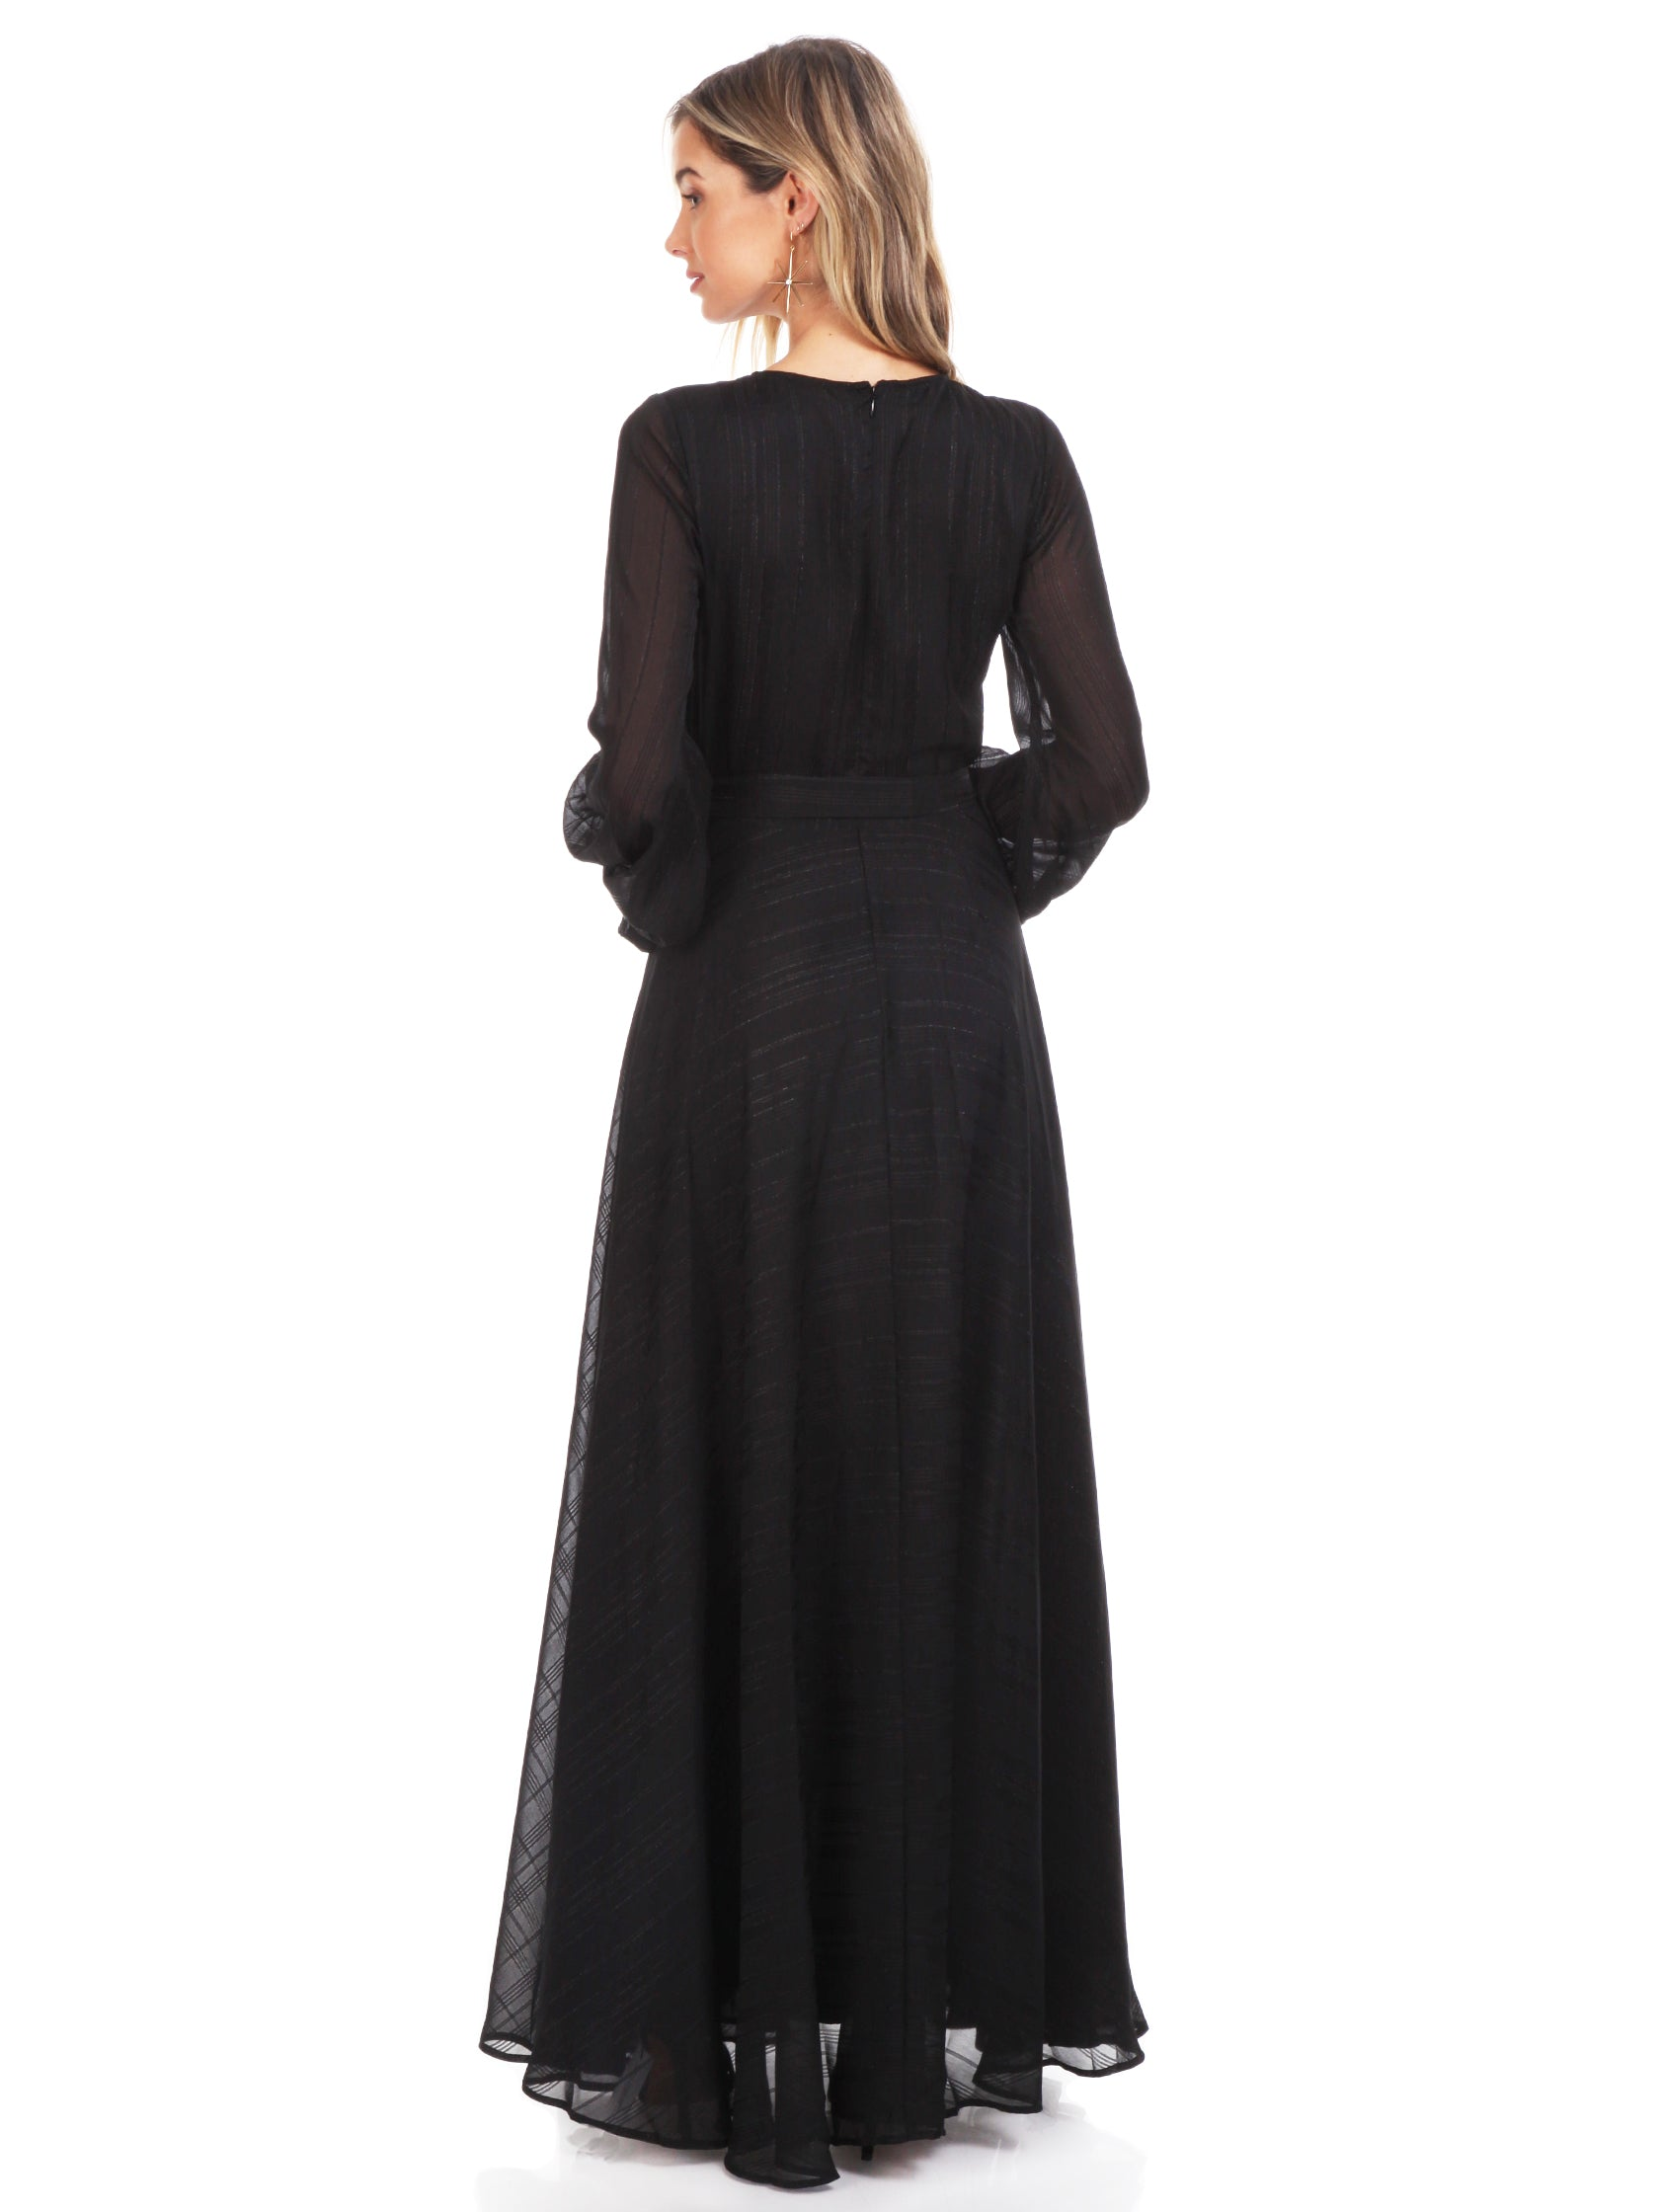 Women wearing a dress rental from YUMI KIM called Giselle Maxi Dress